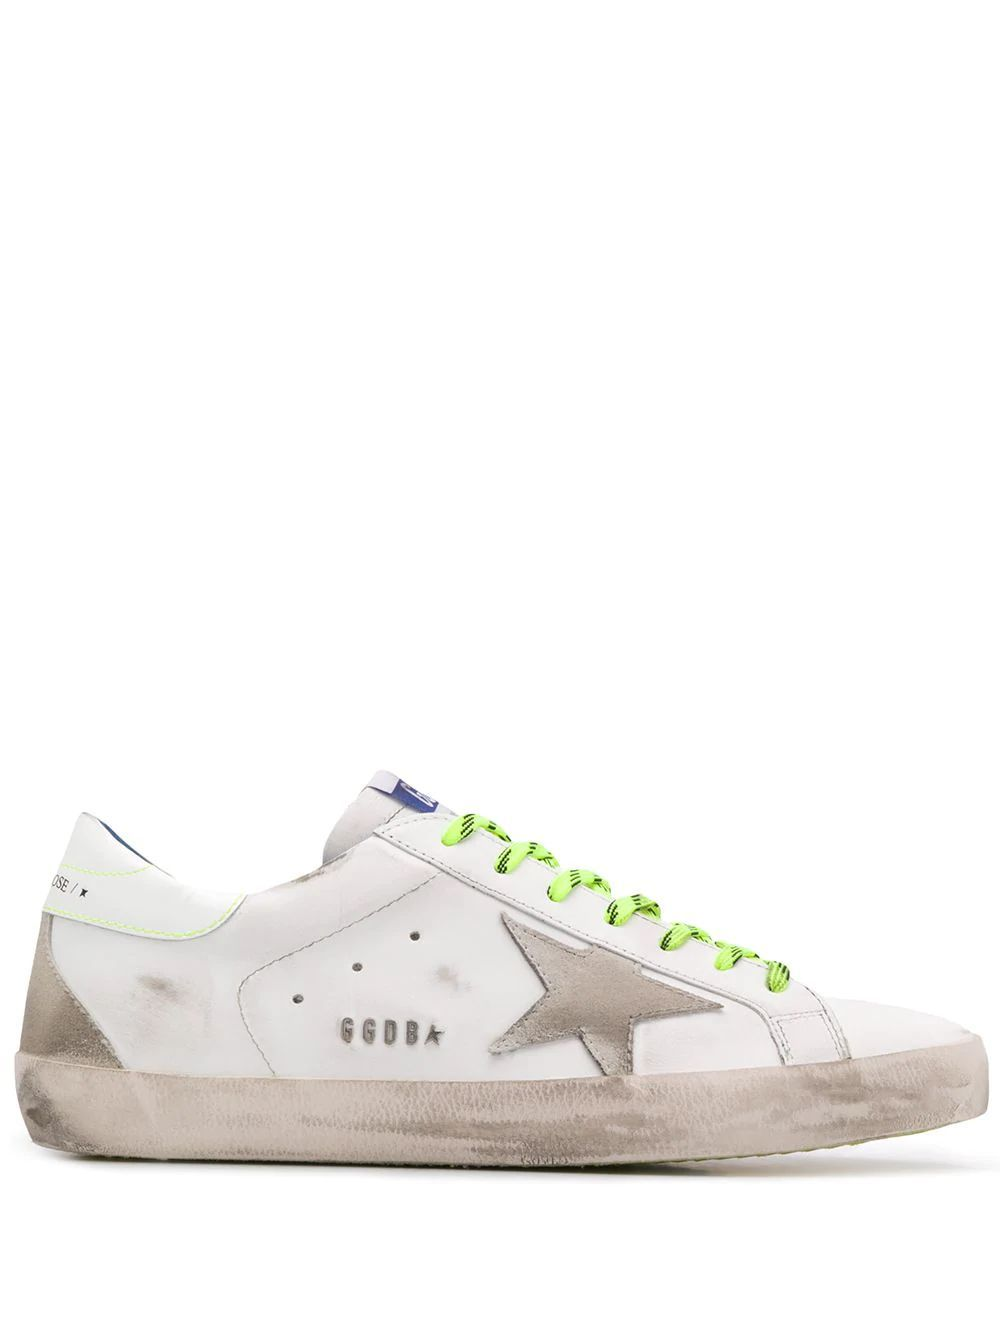 GOLDEN GOOSE MEN'S G36MS590U67 WHITE LEATHER SNEAKERS